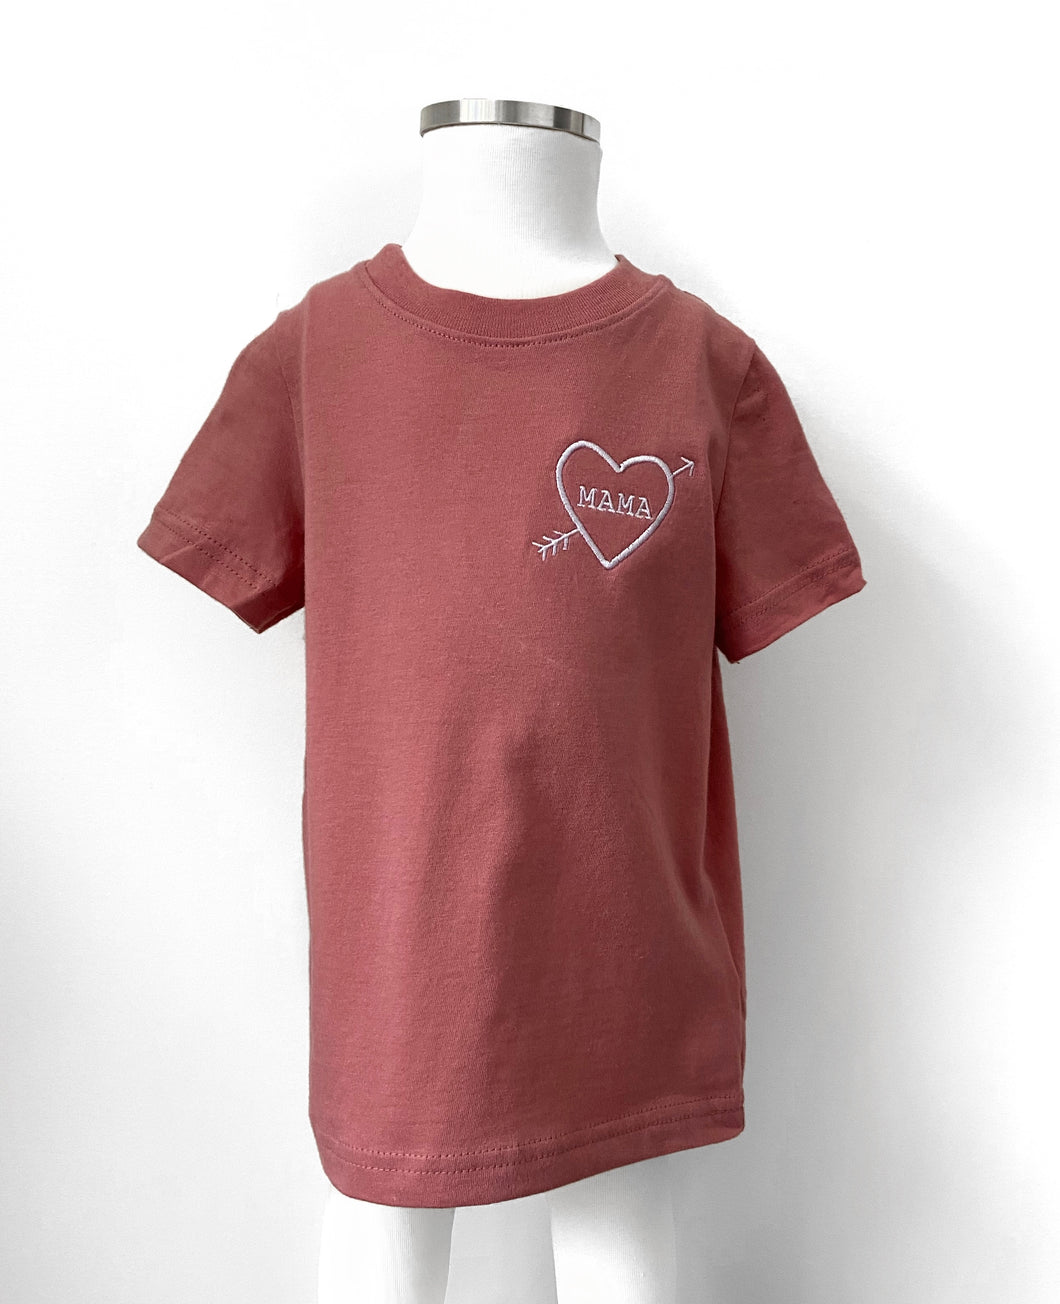 MM Mama Mauve T-Shirt